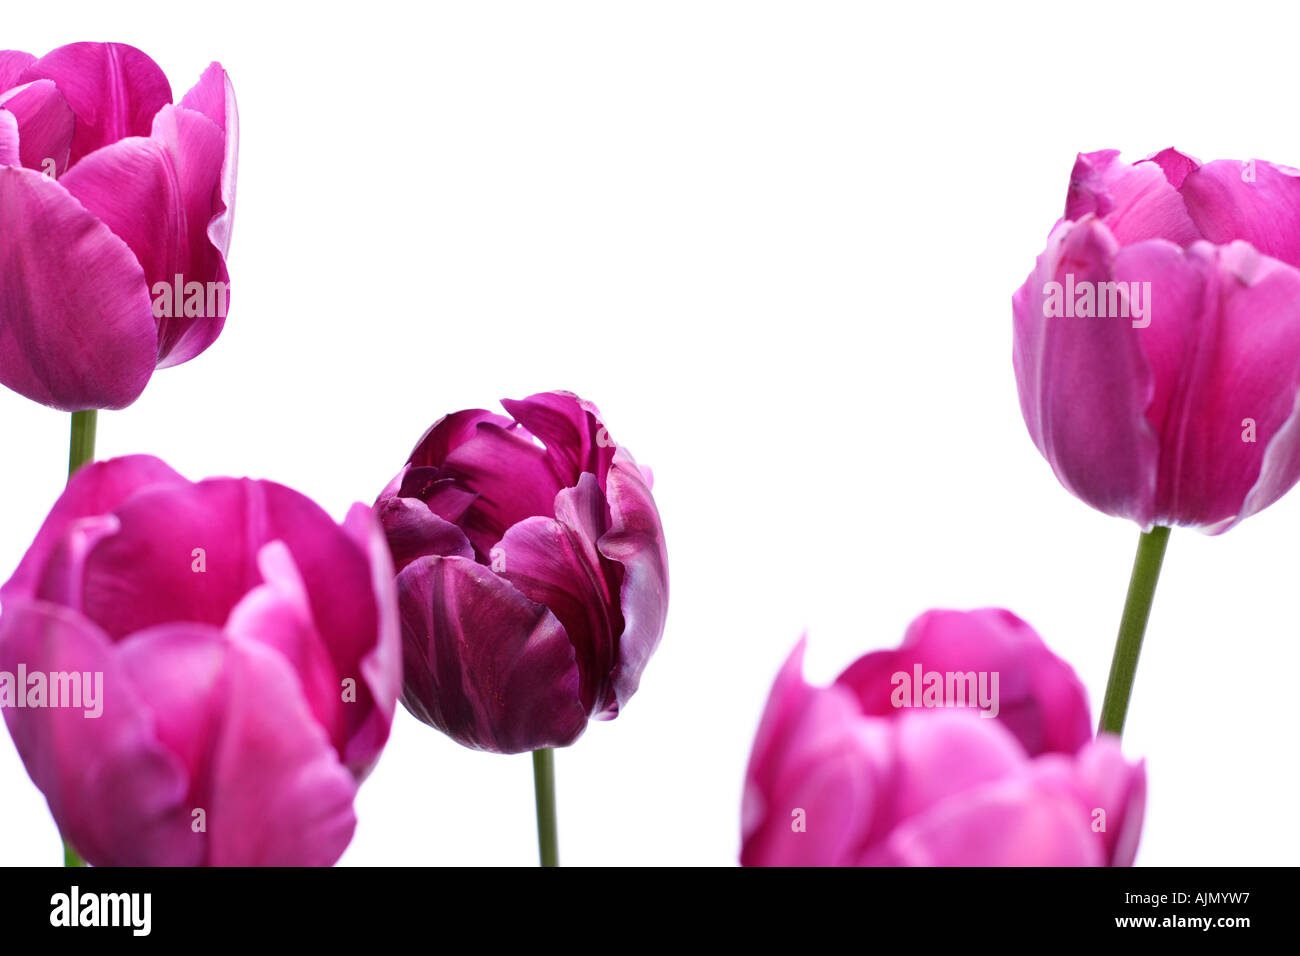 Side view of purple tulips, latin name tulipa, against a white background. Focus is on the centre tulip. Stock Photo